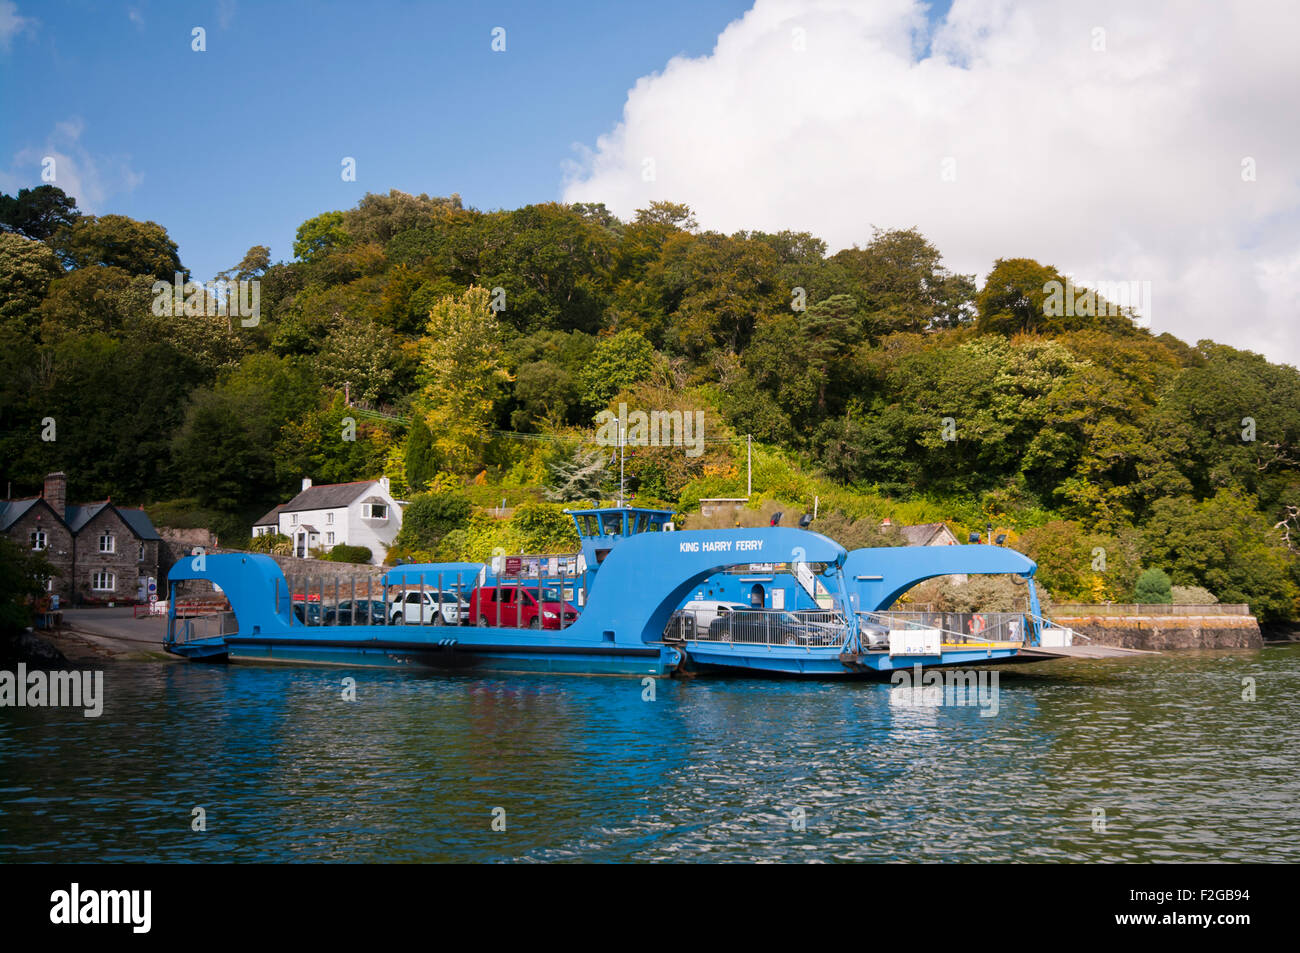 The King Harry Chain Ferry Which connects St Mawes and the Roseland Peninsula  with feock across The River Fal Cornwall - Stock Image